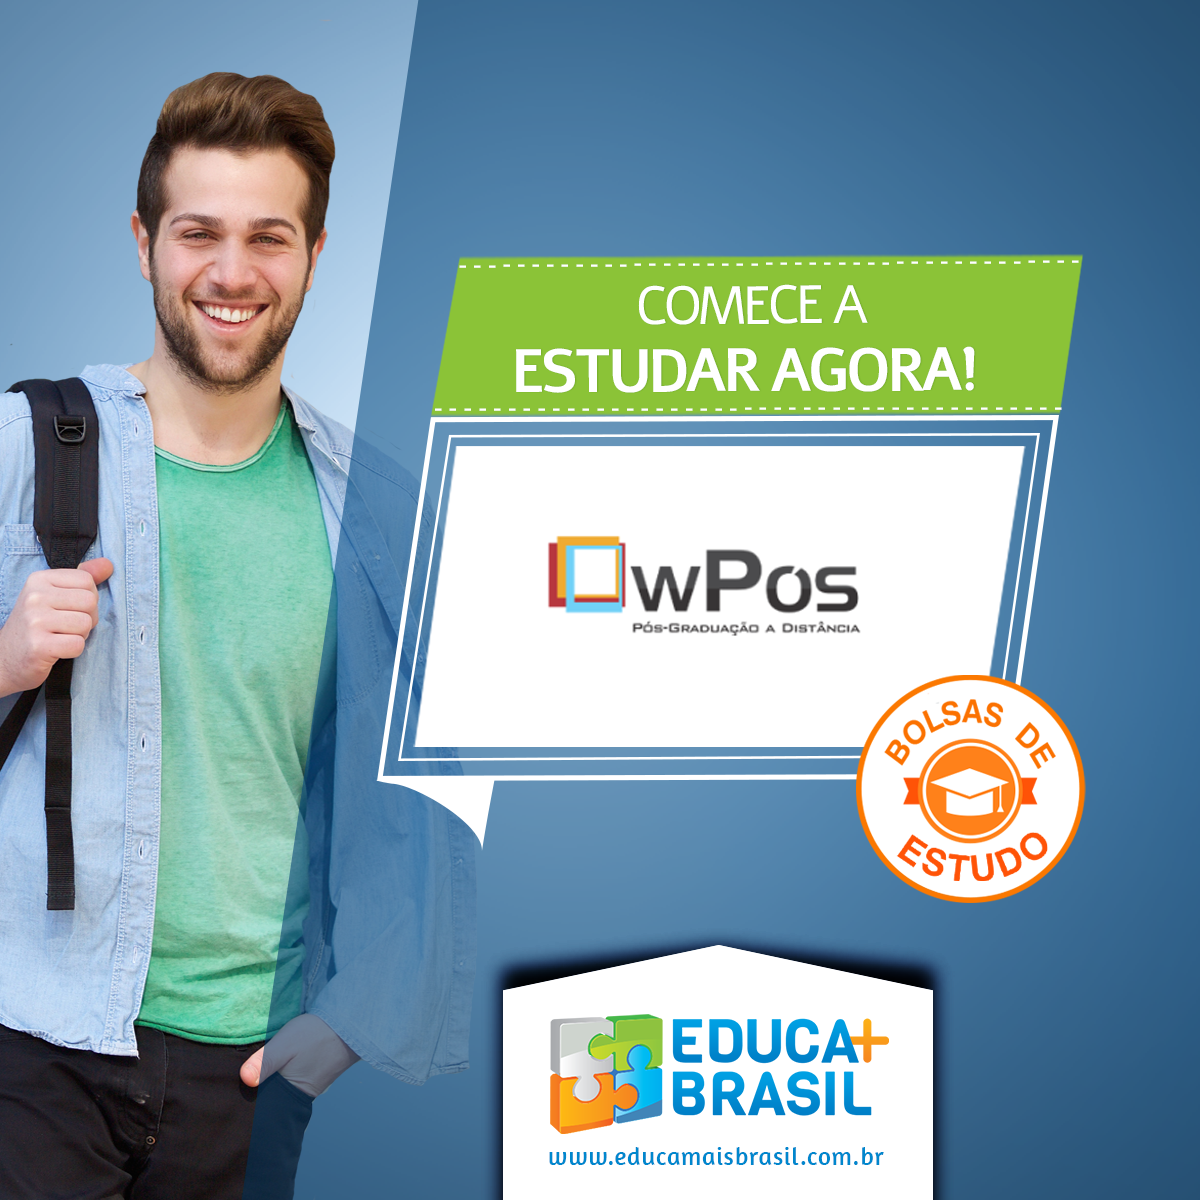 Bolsas de Estudo - WPós